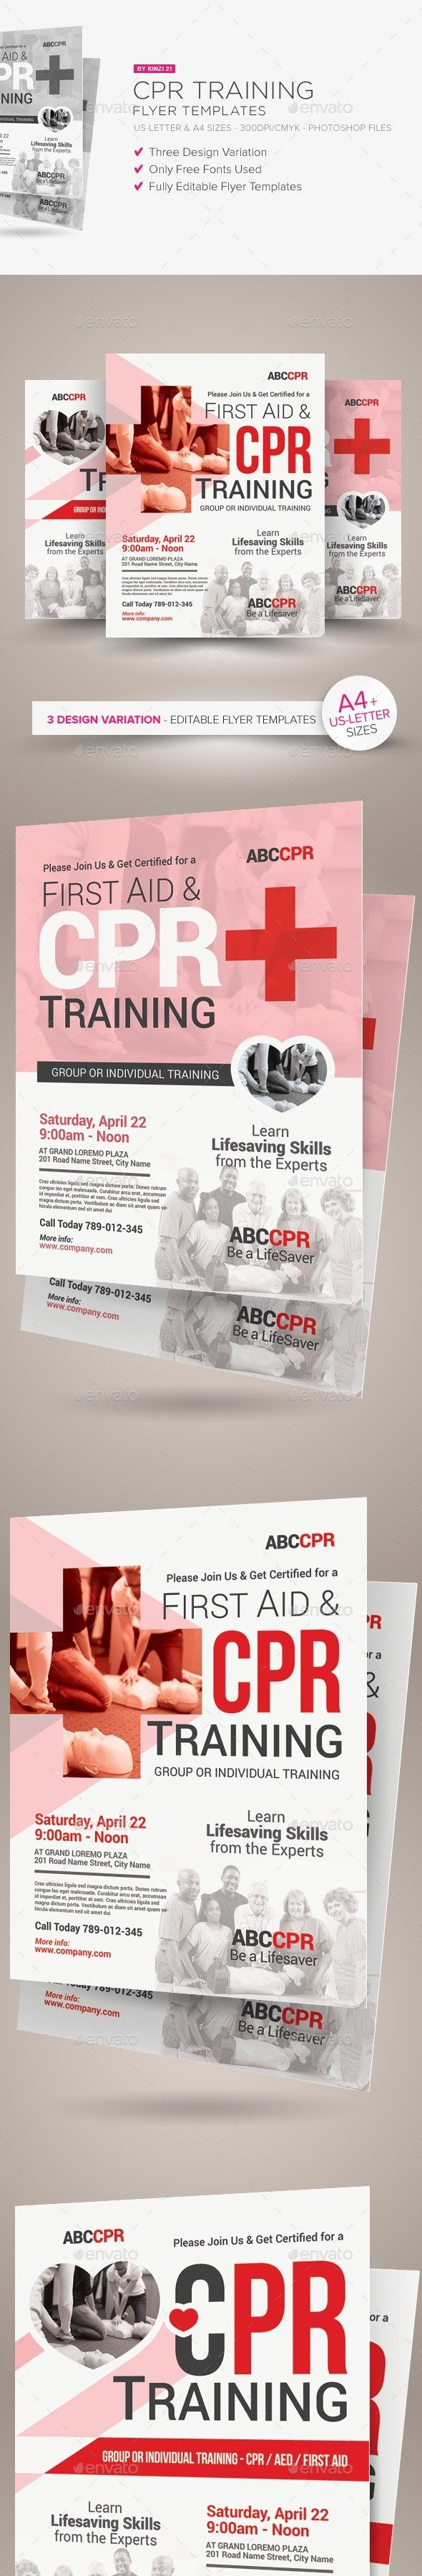 Cpr Training Flyer Templates Cpr Training Cpr First Aid